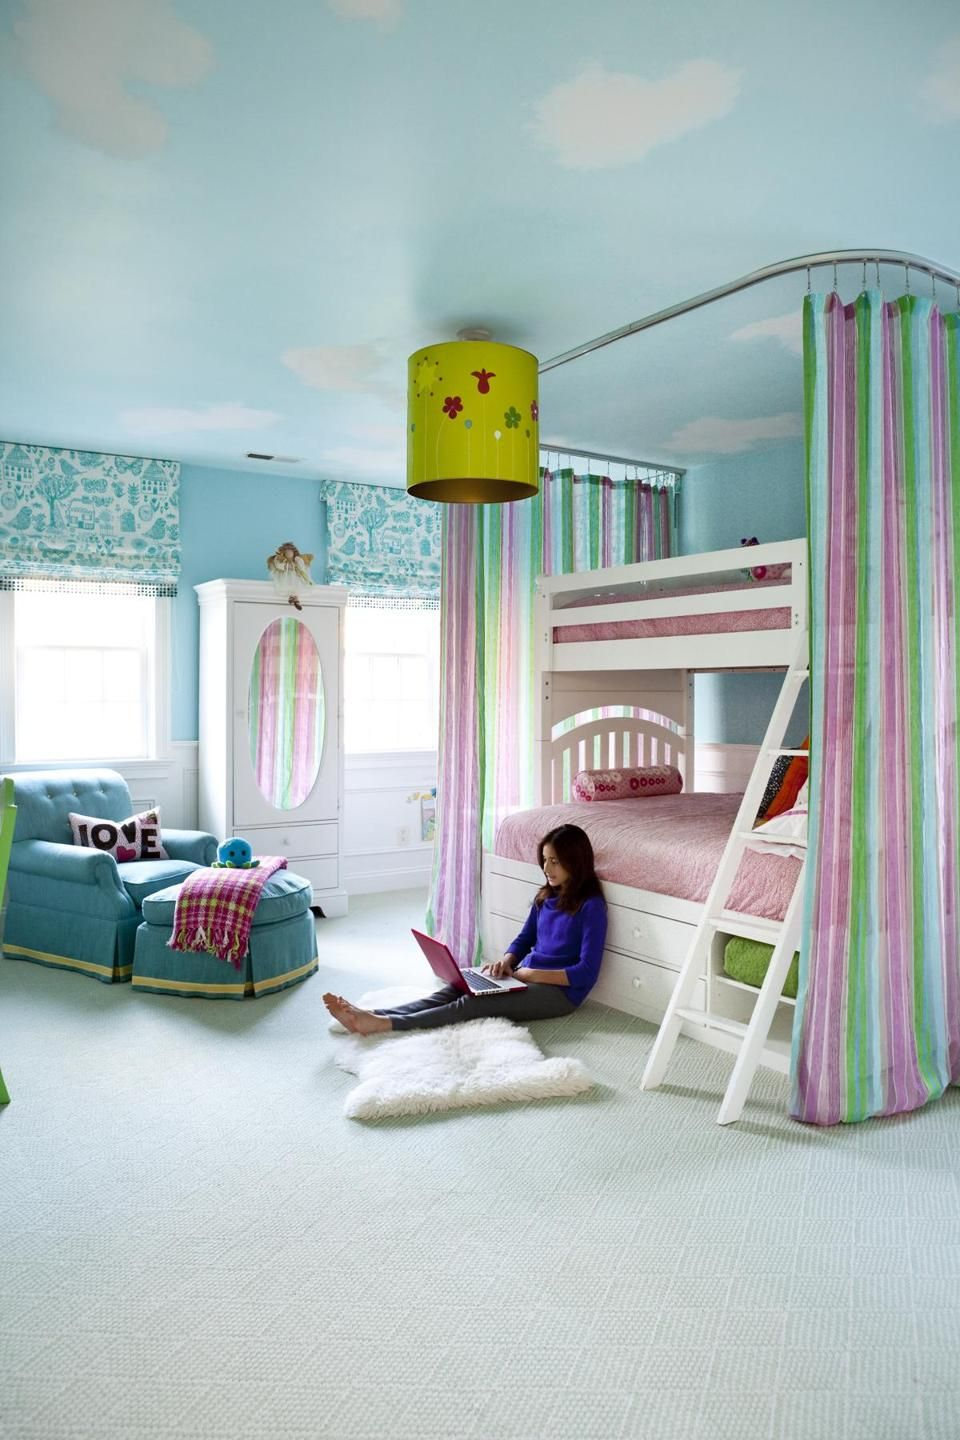 5 inspired rooms - The Boston Globe | Hochbett vorhang, Kinderzimmer ...